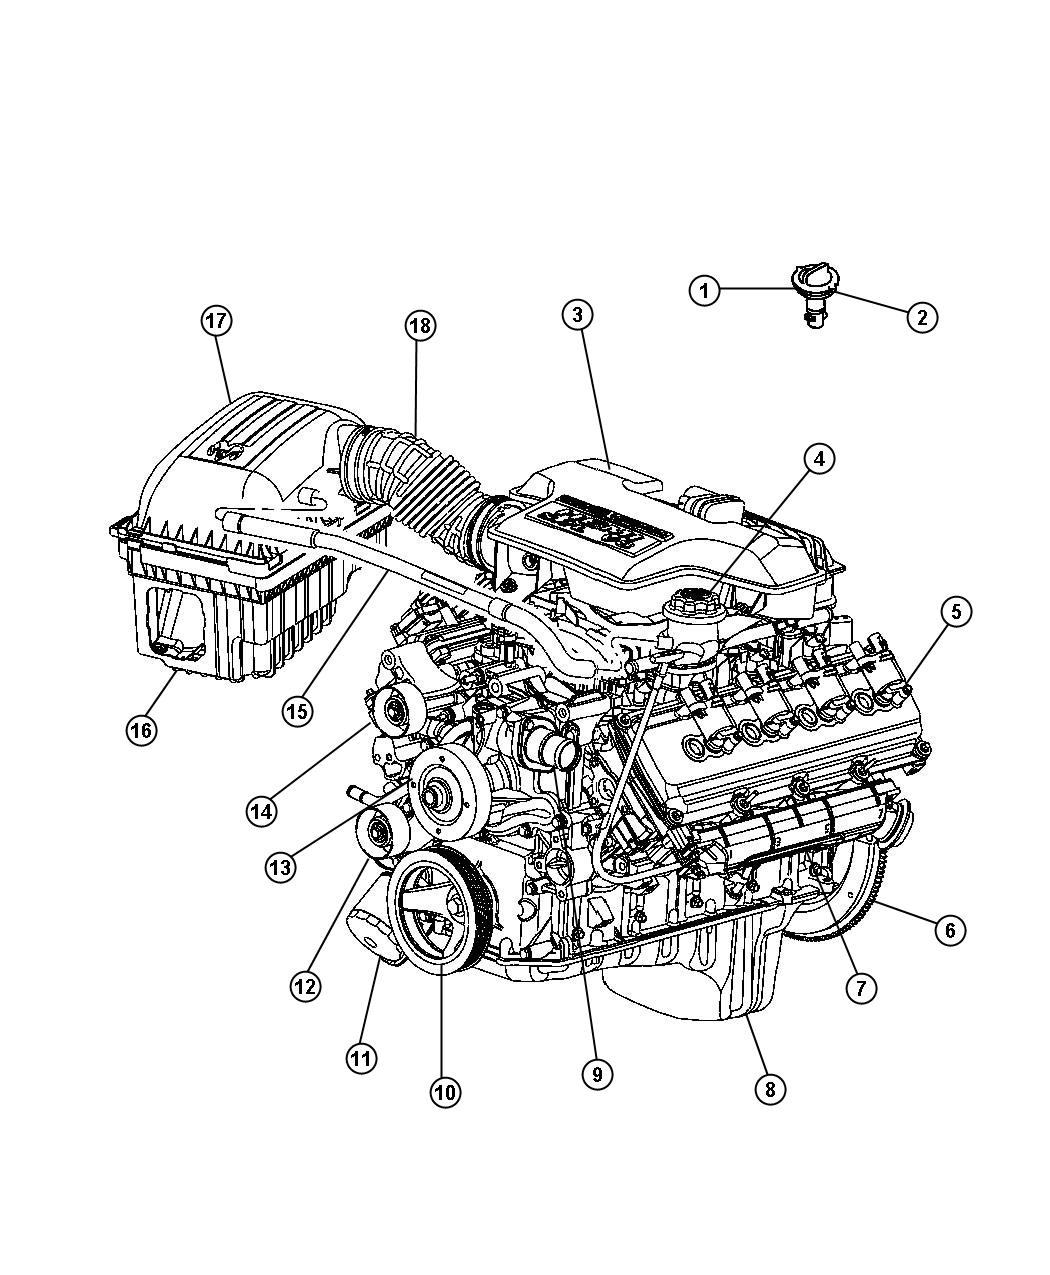 dodge ram engine diagram dodge ram x fuse box wiring diagrams online Microphone Cable Wiring Diagram dodge ram hemi spark plug wire diagram images dodge ram hemi engine diagram wiring